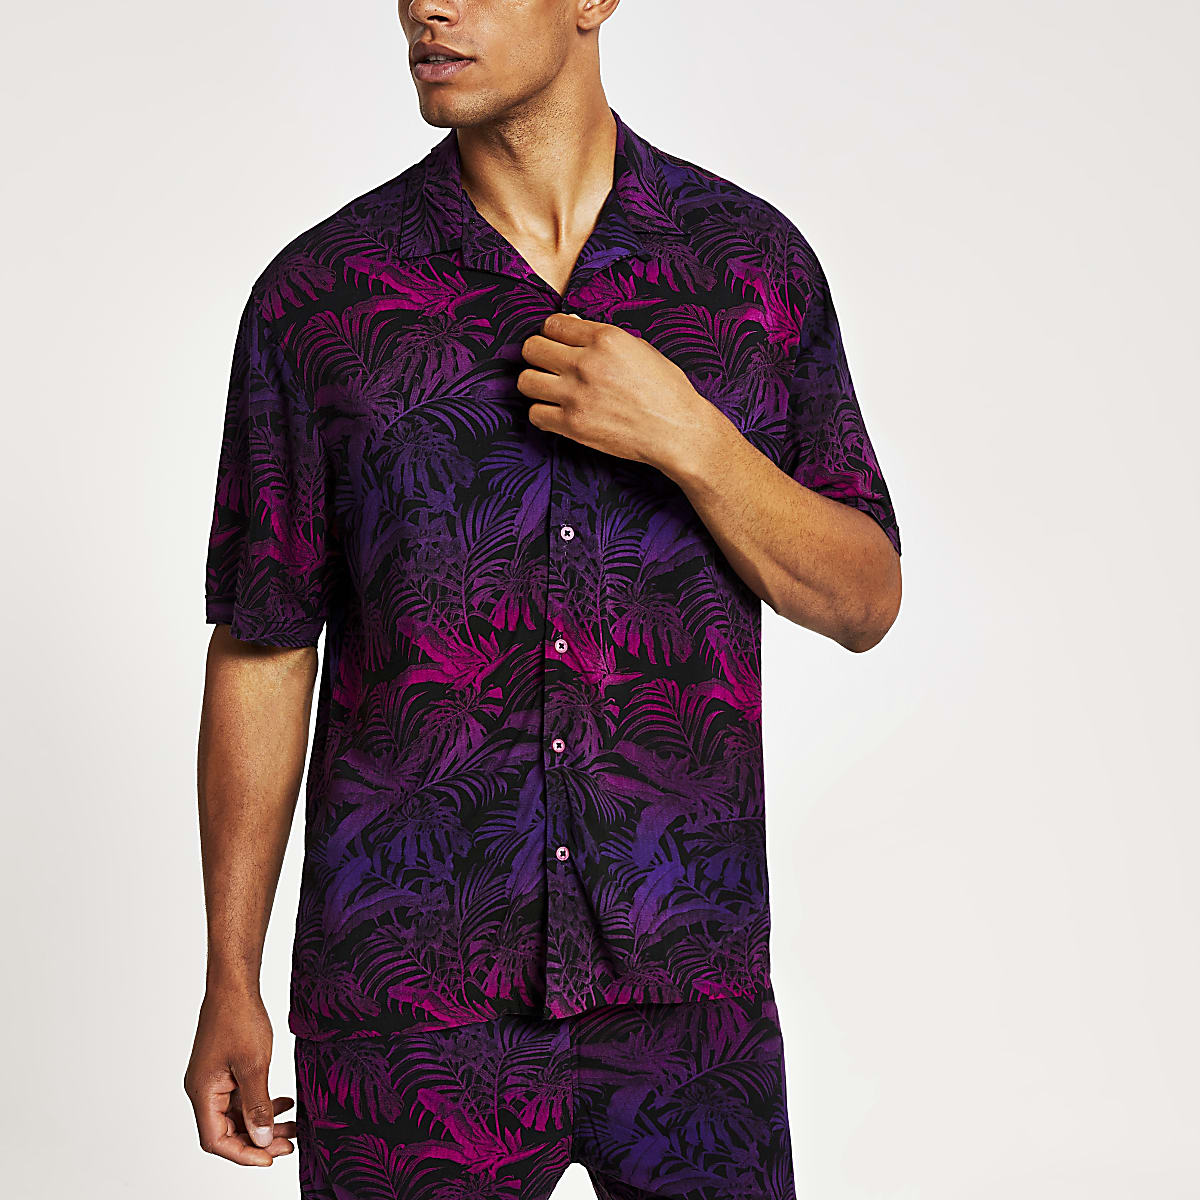 Jack and Jones pink print regular fit shirt